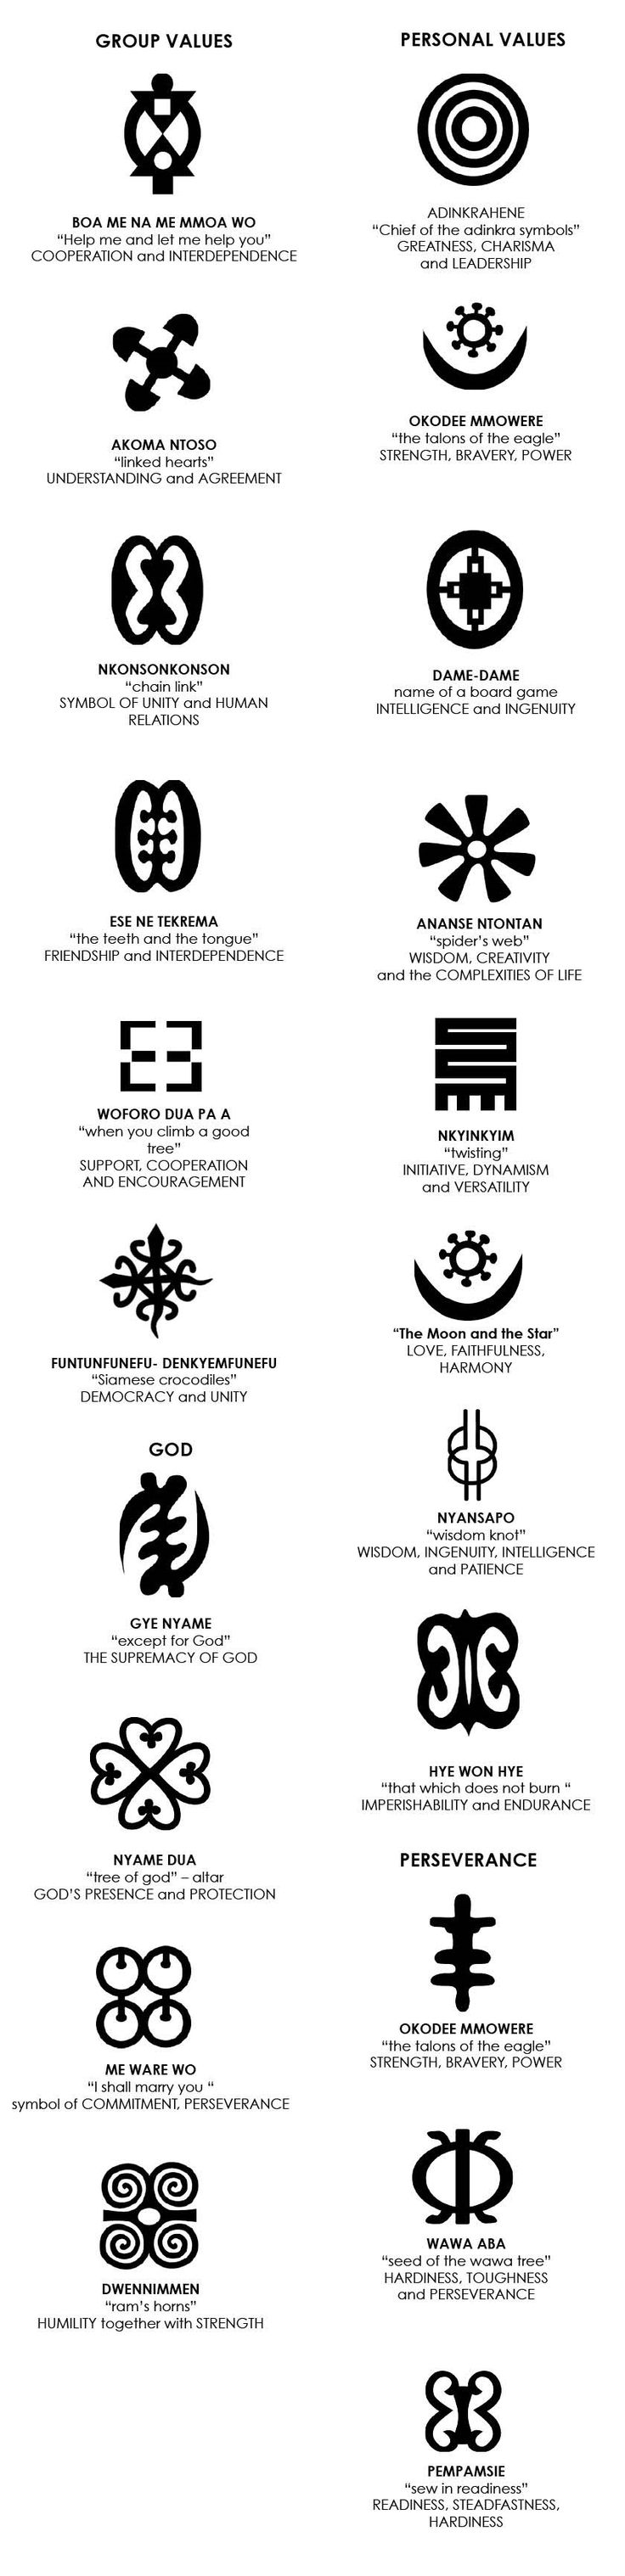 Greek symbol of wisdom here are our adinkra symbols petroglyphs greek symbol of wisdom here are our adinkra symbols petroglyphs pinterest adinkra symbols symbols and tattoo biocorpaavc Choice Image